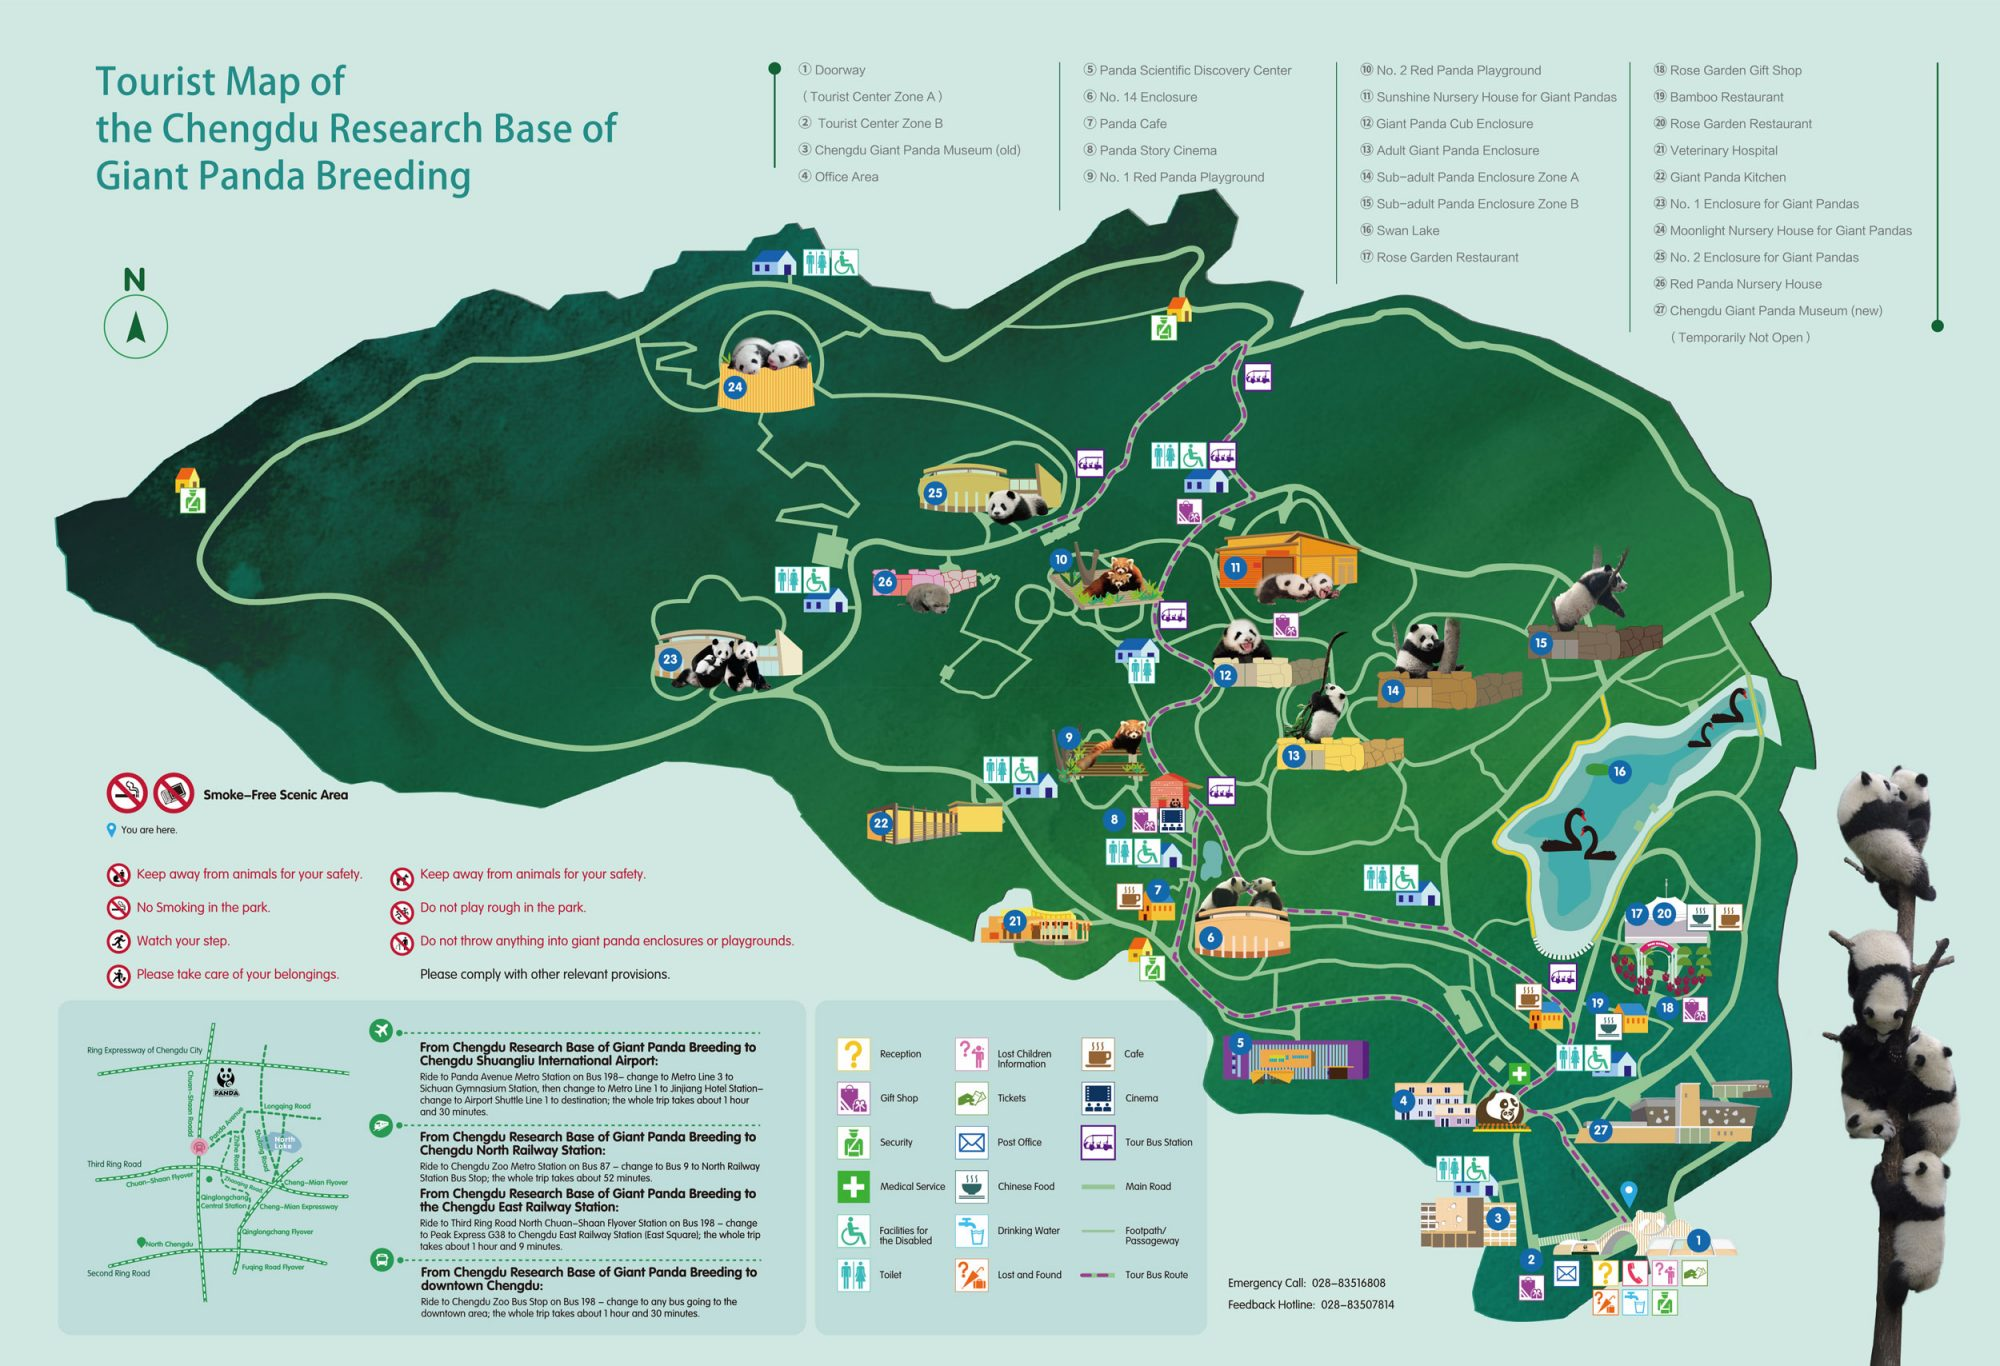 chengdu panda base tourist map